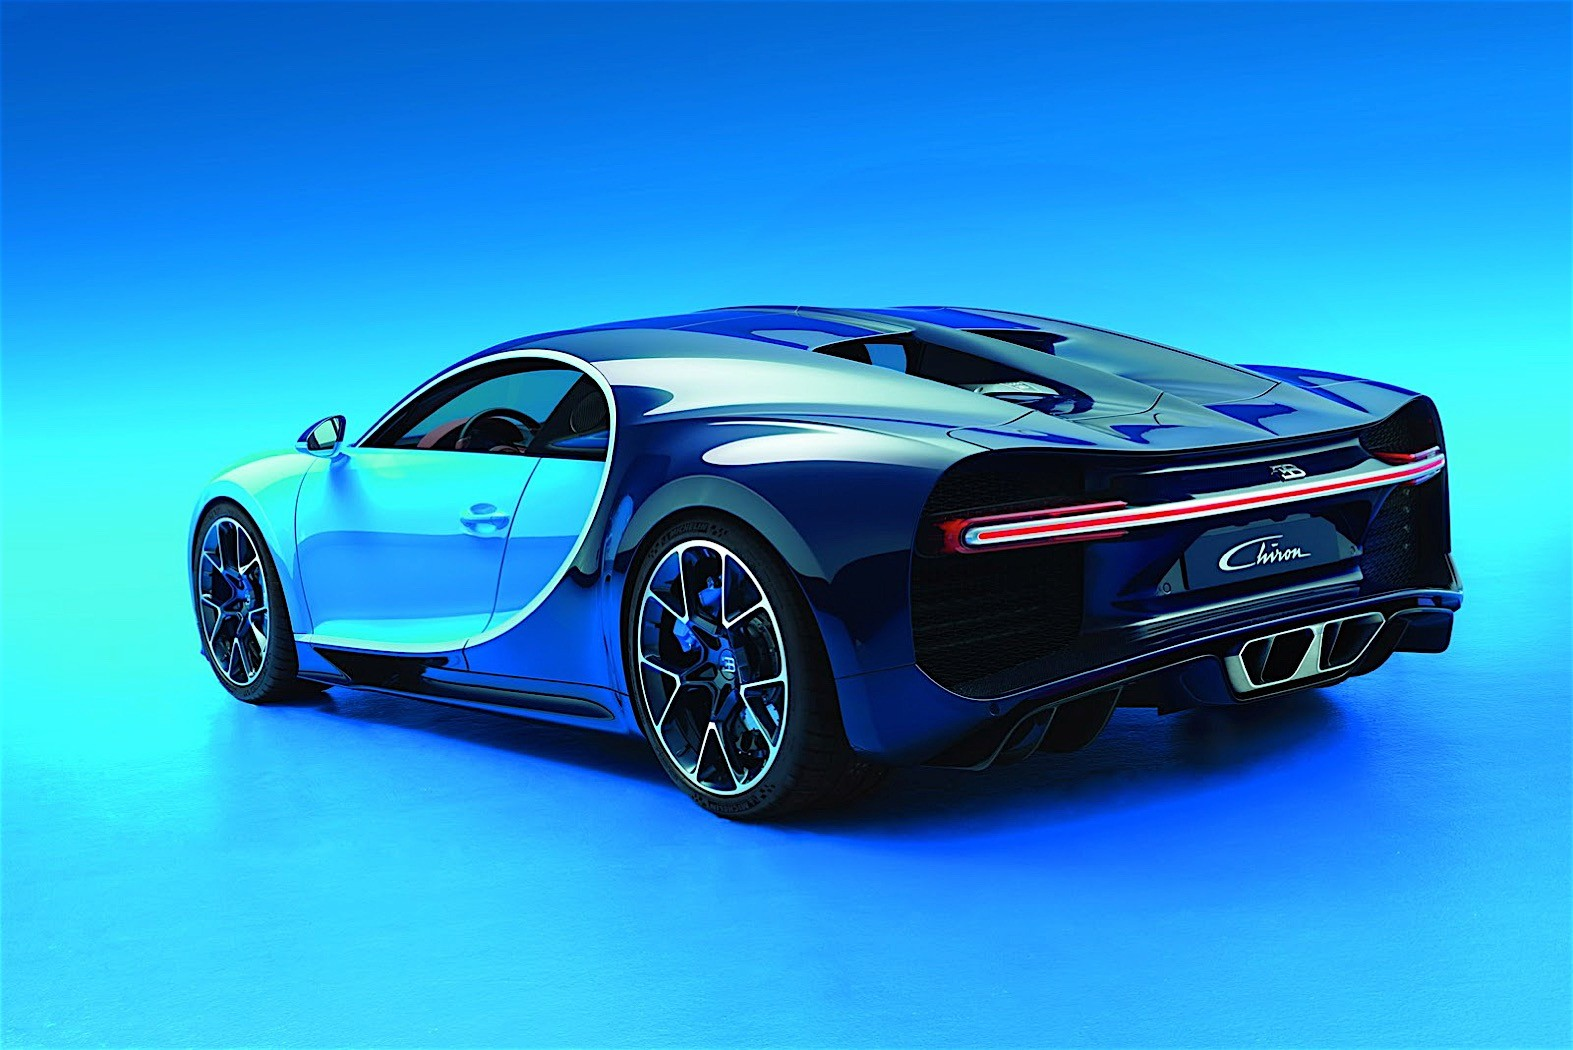 Bugatti Admits Targeting New Sd Record With Chiron, Water Is ... on purple ferrari, purple nissan, purple camaro, purple corvette, purple alfa romeo, purple ford, purple skyline gtr, purple aventador, purple supercar, purple cars, purple future, purple mustang, purple smart, purple adidas, purple volvo, purple hennessey venom gt, purple maybach, purple pagani, purple lamborghini, purple ambition,